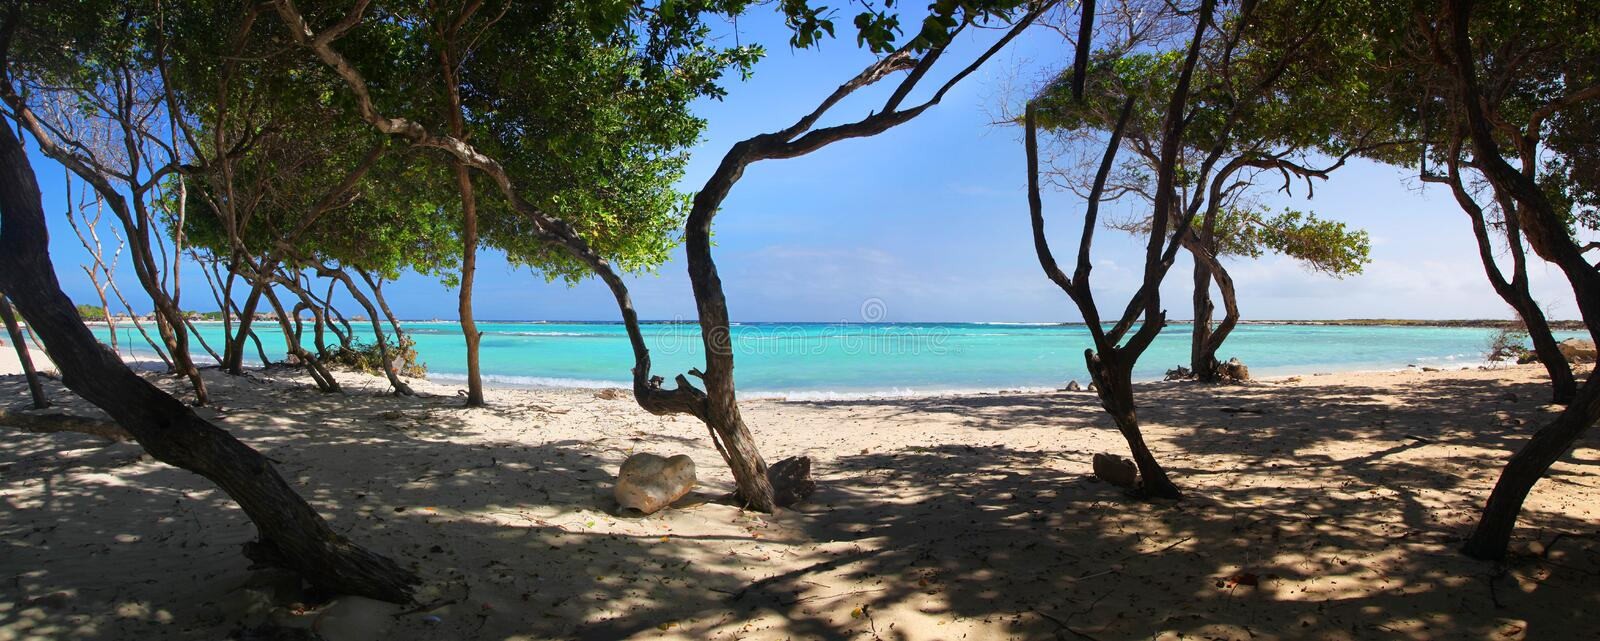 Turquoise waters and windswept trees of Baby Beach Aruba royalty free stock image